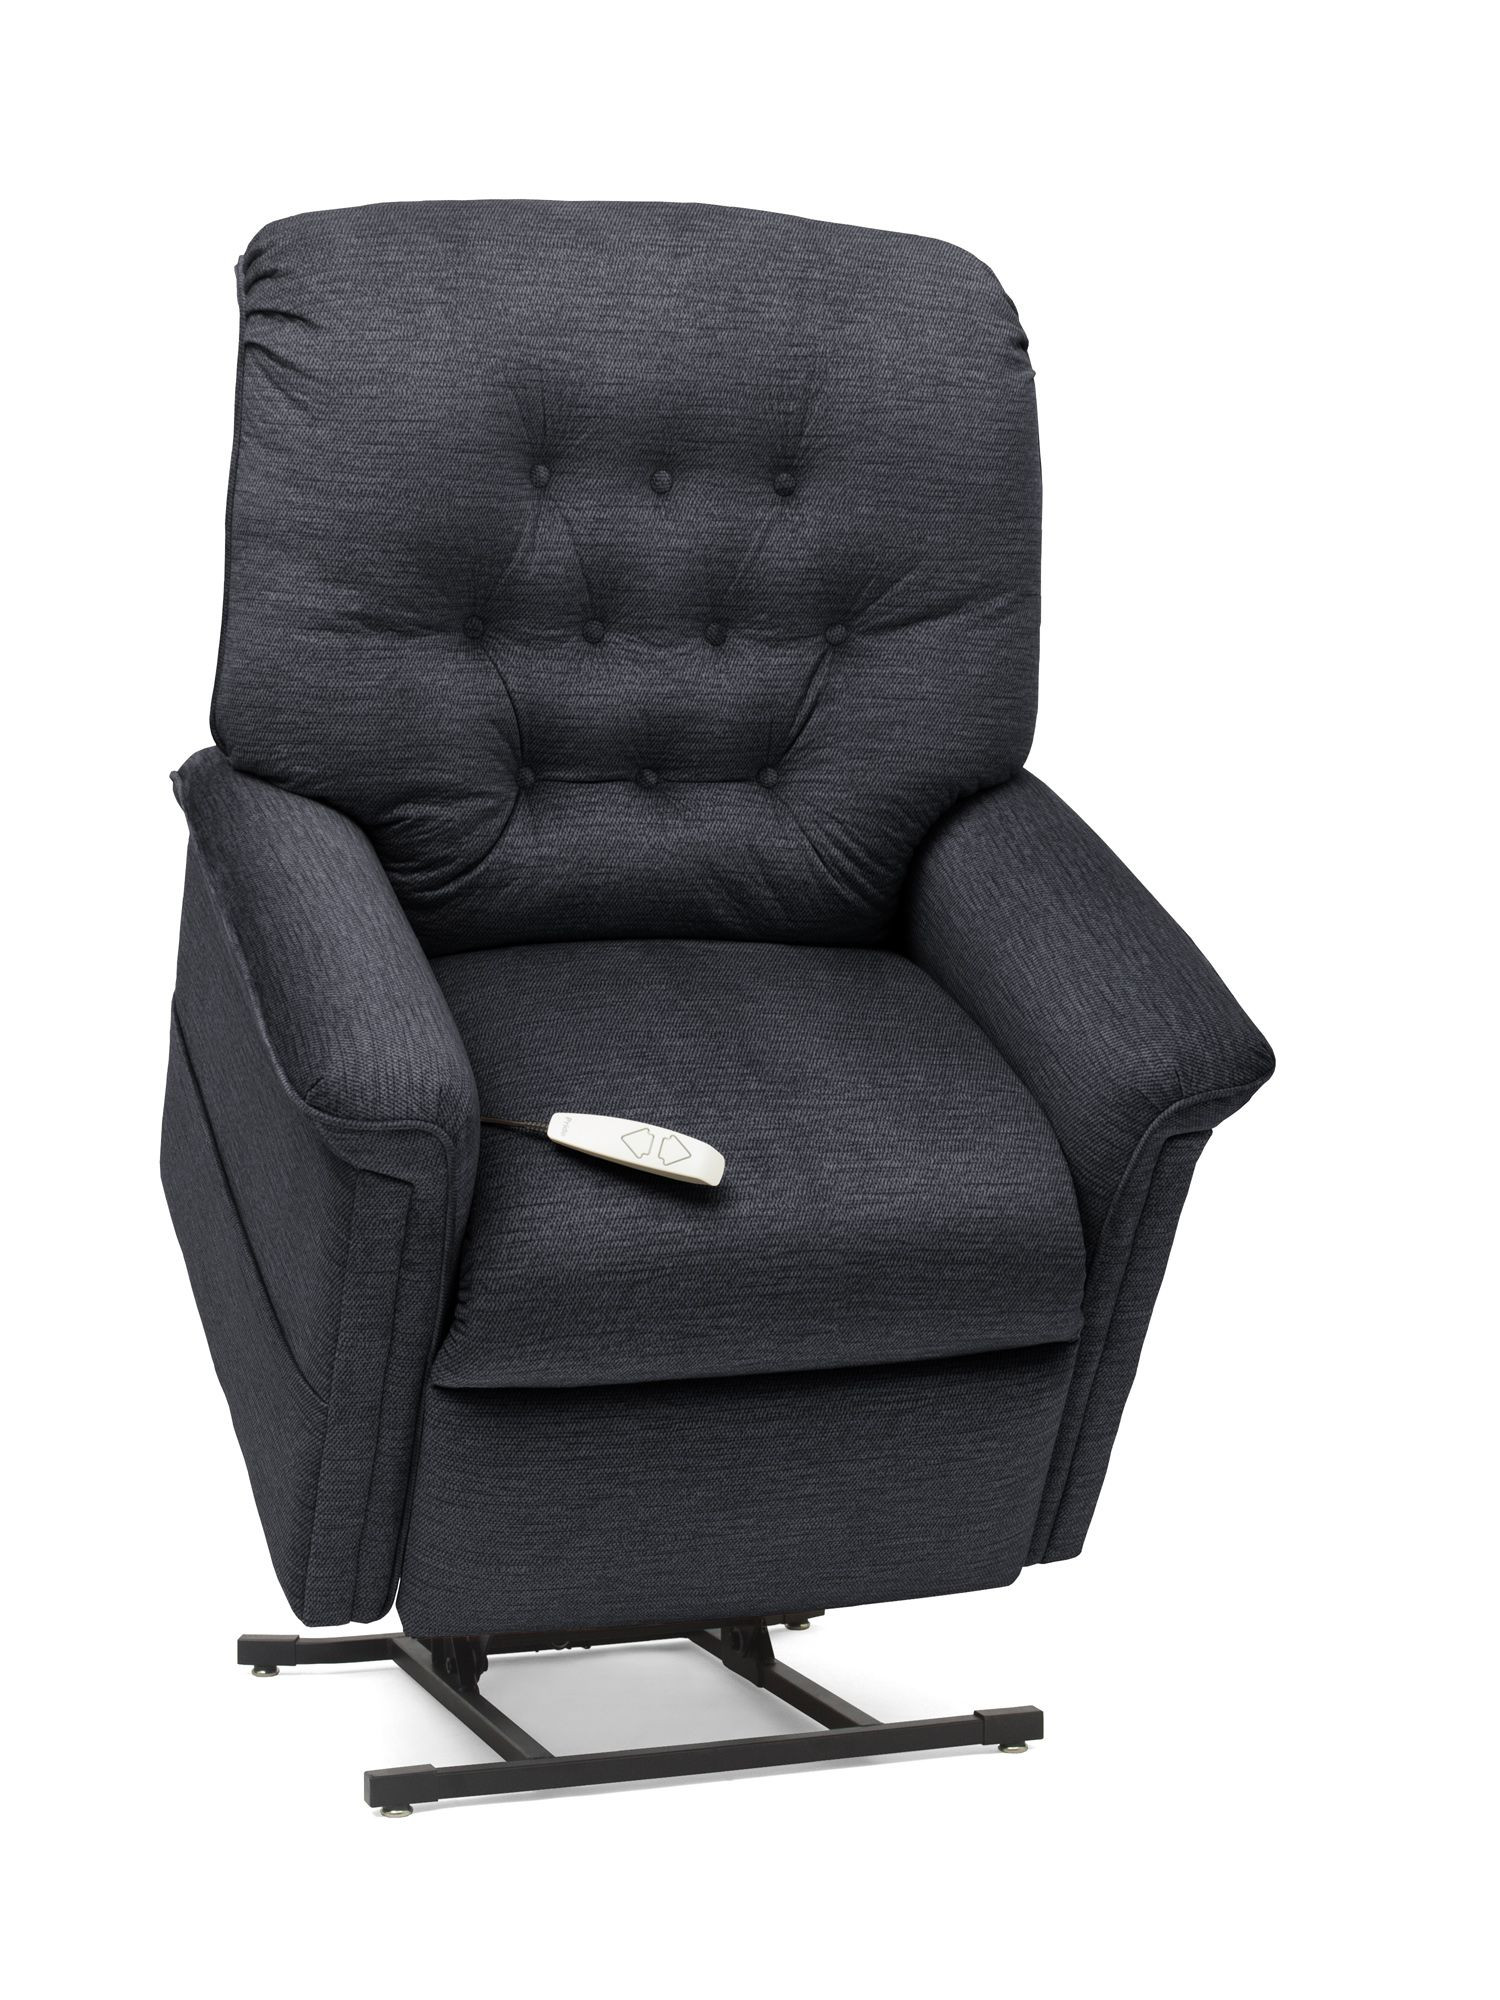 Pride lift chairs logo - Pride Lc 358 3 Position Lift Chair